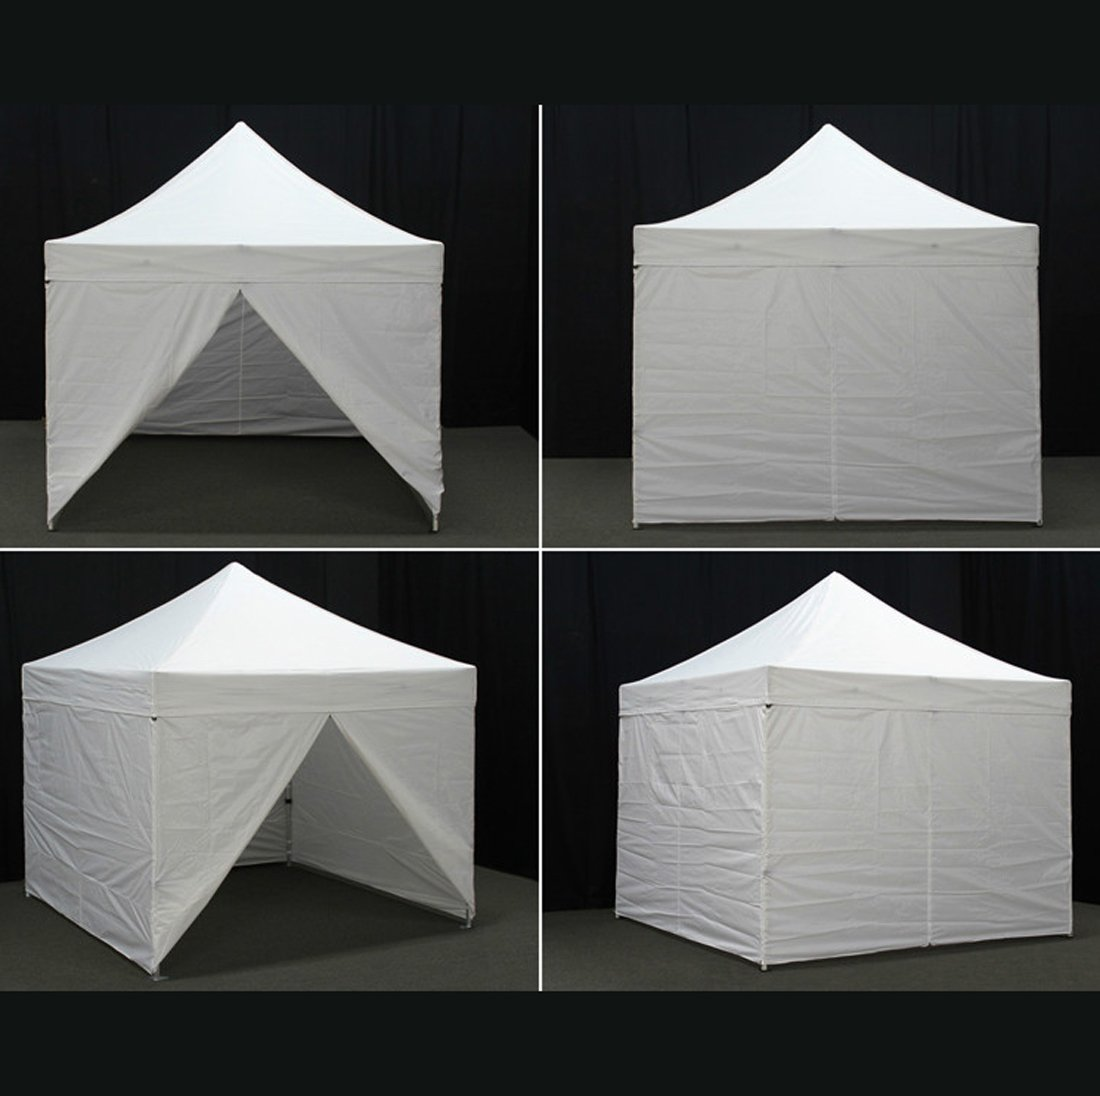 Amazon.com : Eurmax 10x10 Ez Pop up 4 Wall Canopy Instant Party Tent Portable Outdoor Canopy with 4 Removable Zipper End Side Walls with Carry Bag (Red) ...